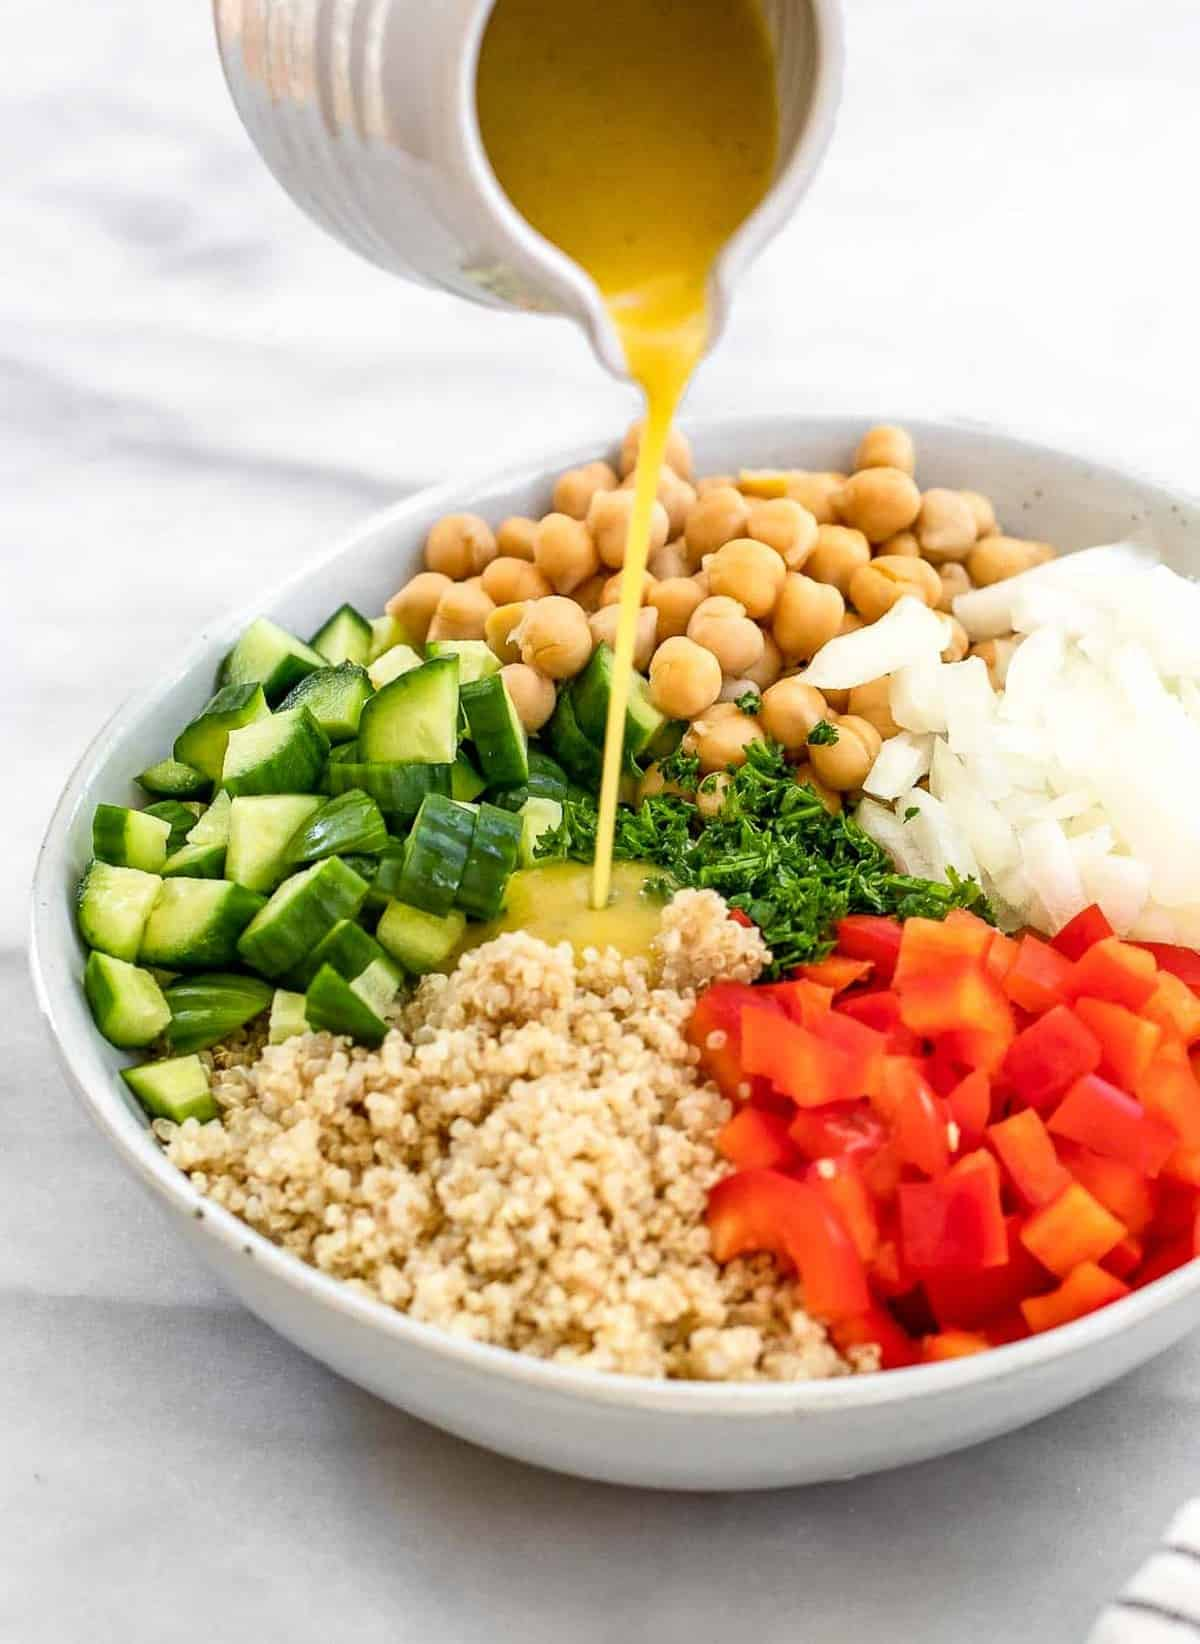 Pouring the dressing onto the quinoa tabbouleh salad.